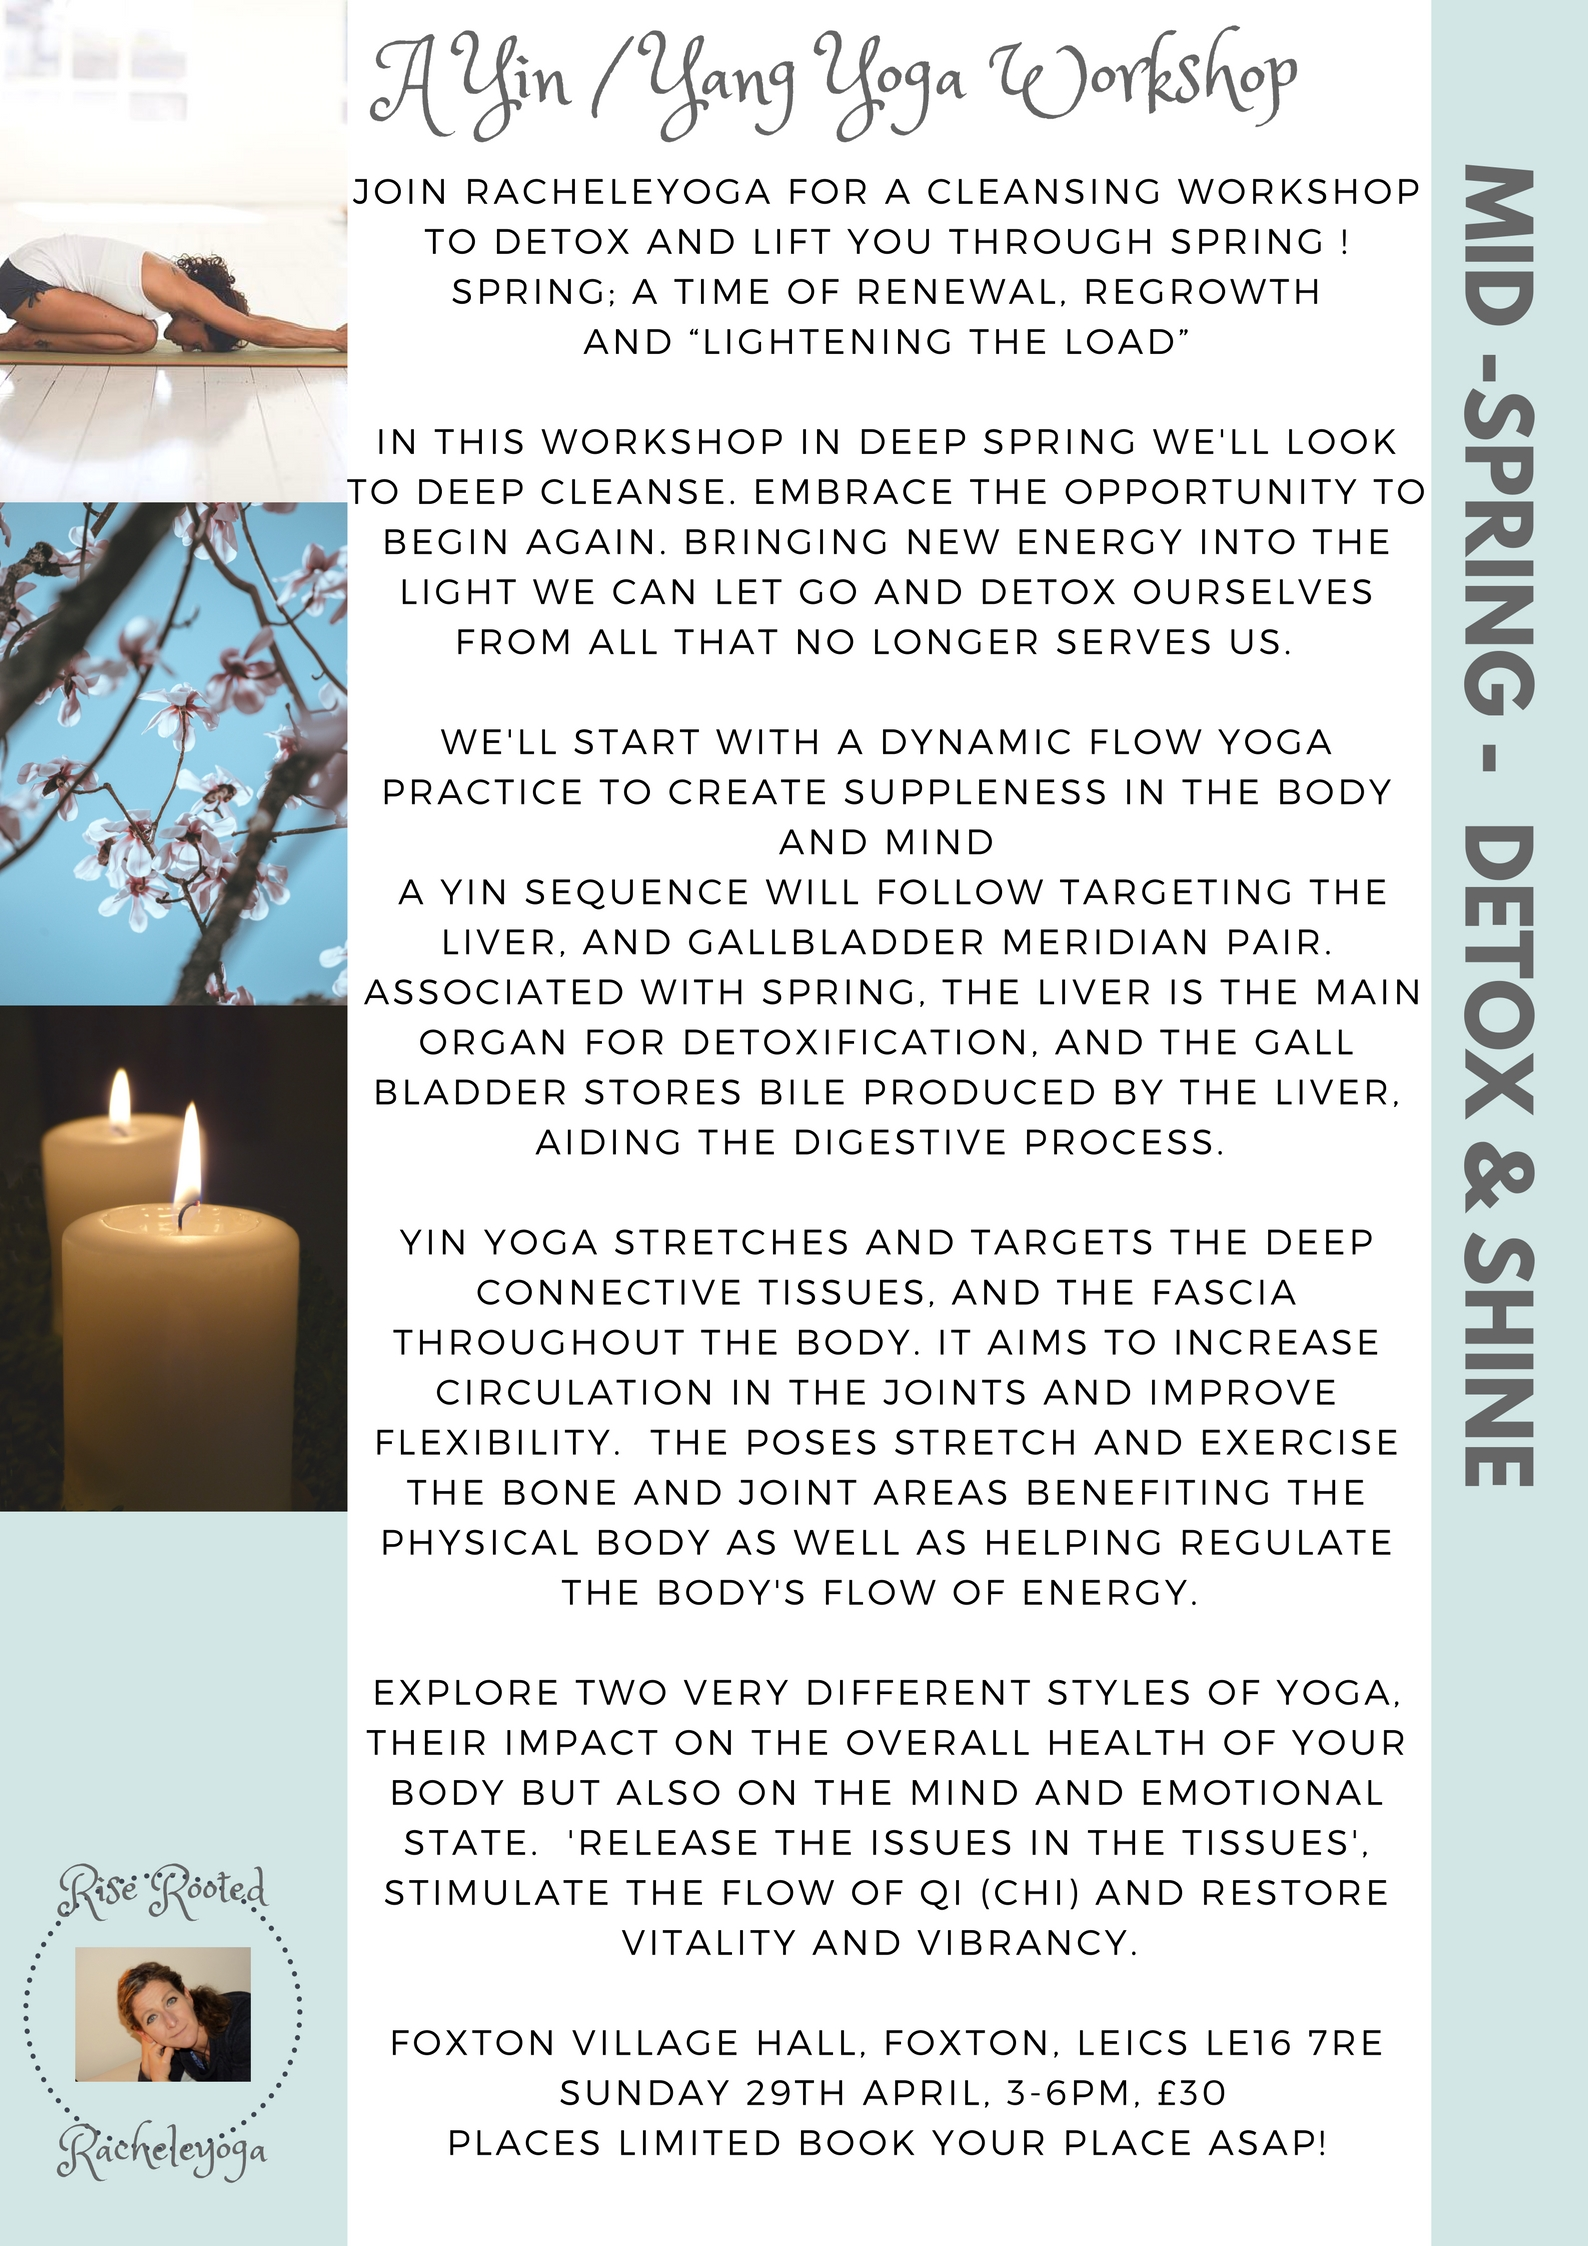 A Yin / Yang Deep Cleanse Yoga Workshop for Deep Spring